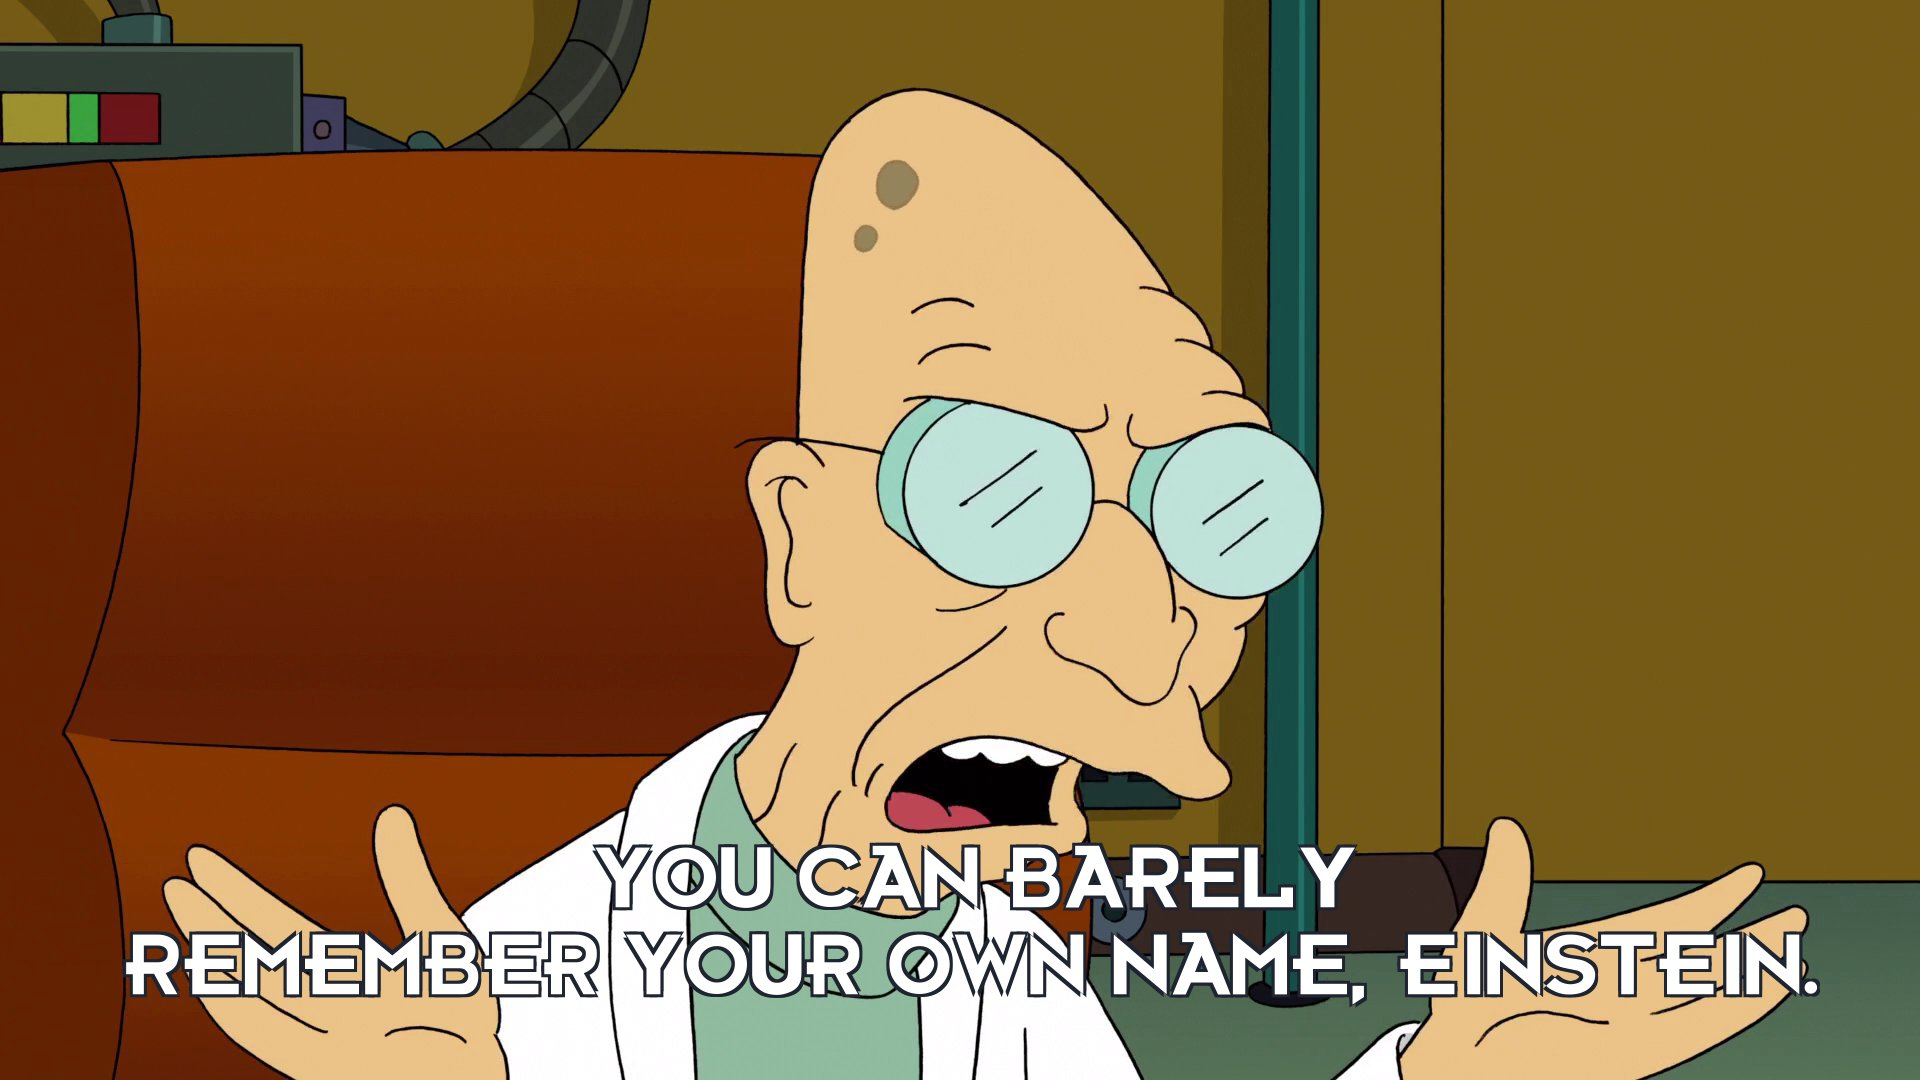 Prof Hubert J Farnsworth: You can barely remember your own name, Einstein.